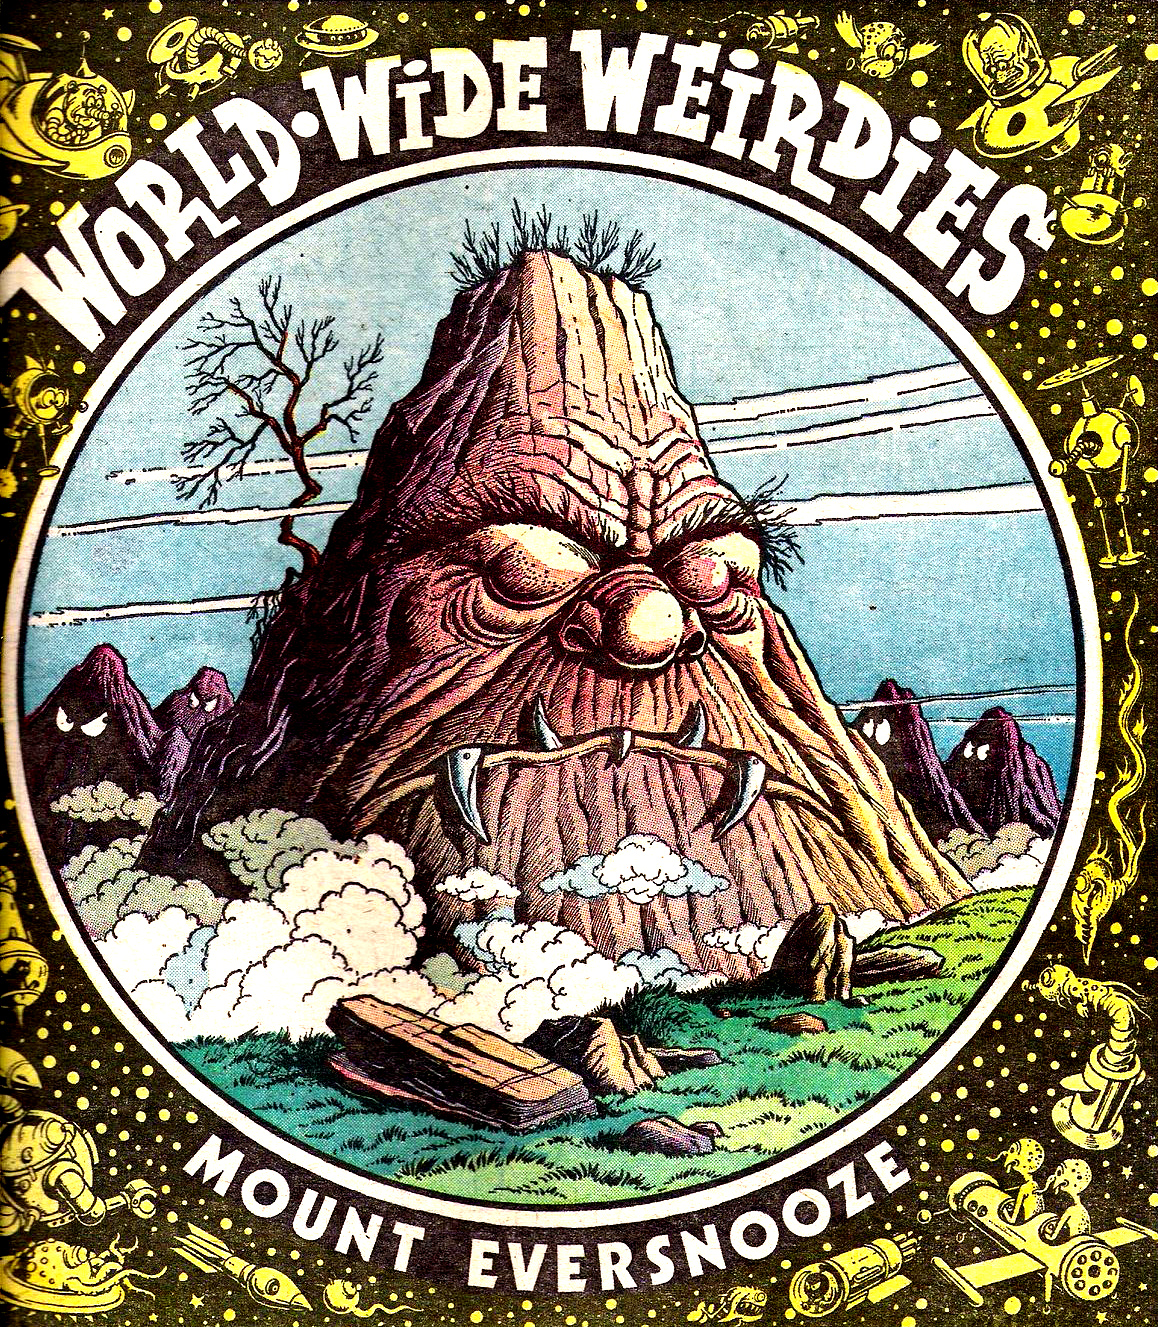 Ken Reid - World Wide Weirdies 02